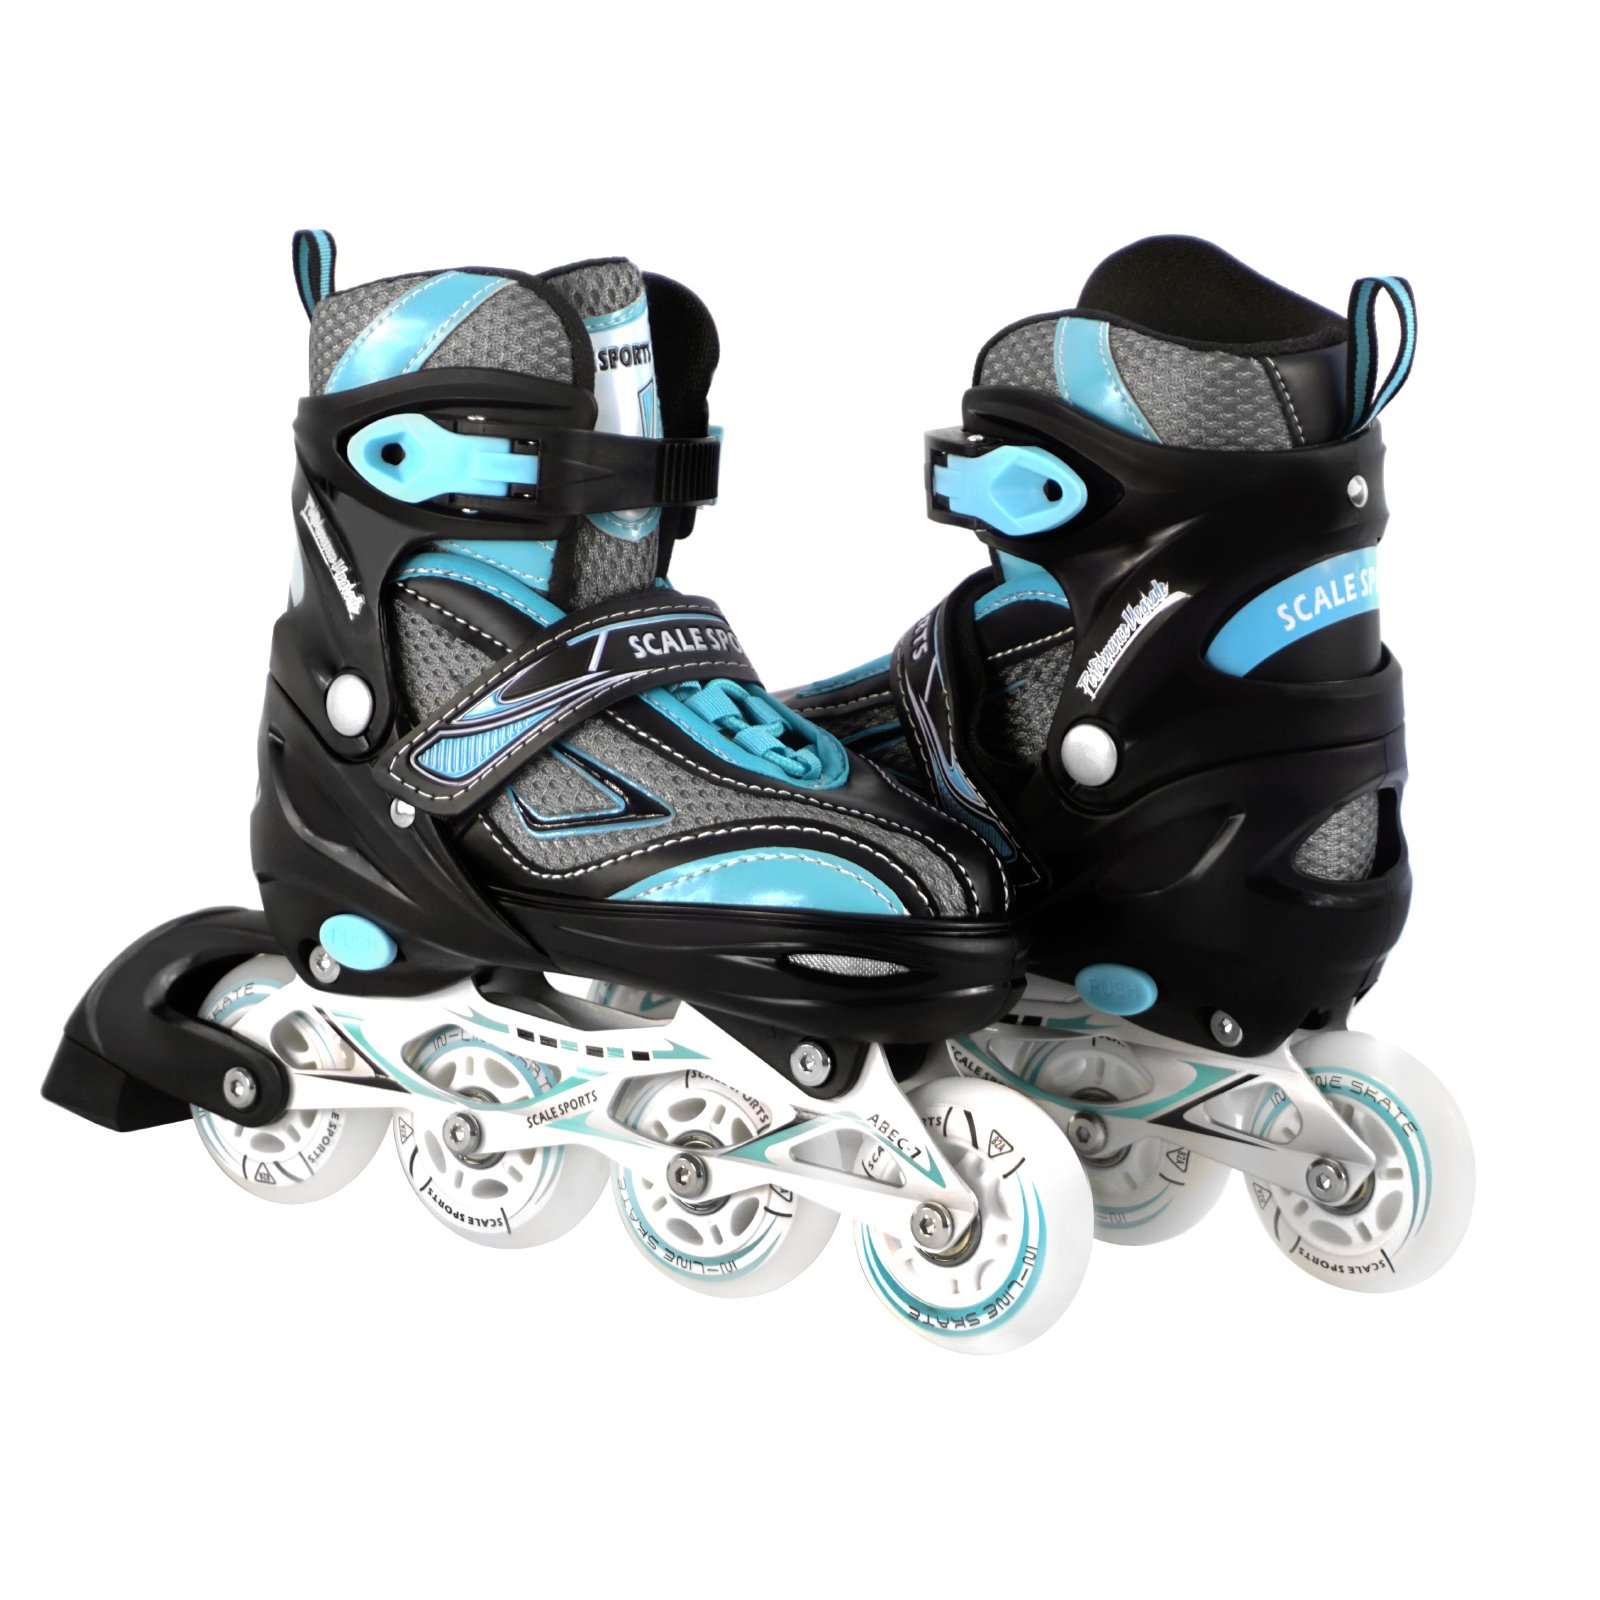 Kids Adjustable Inline Skates for Girls and Boys Durable Outdoor Roller Blades Illuminating Front Wheel